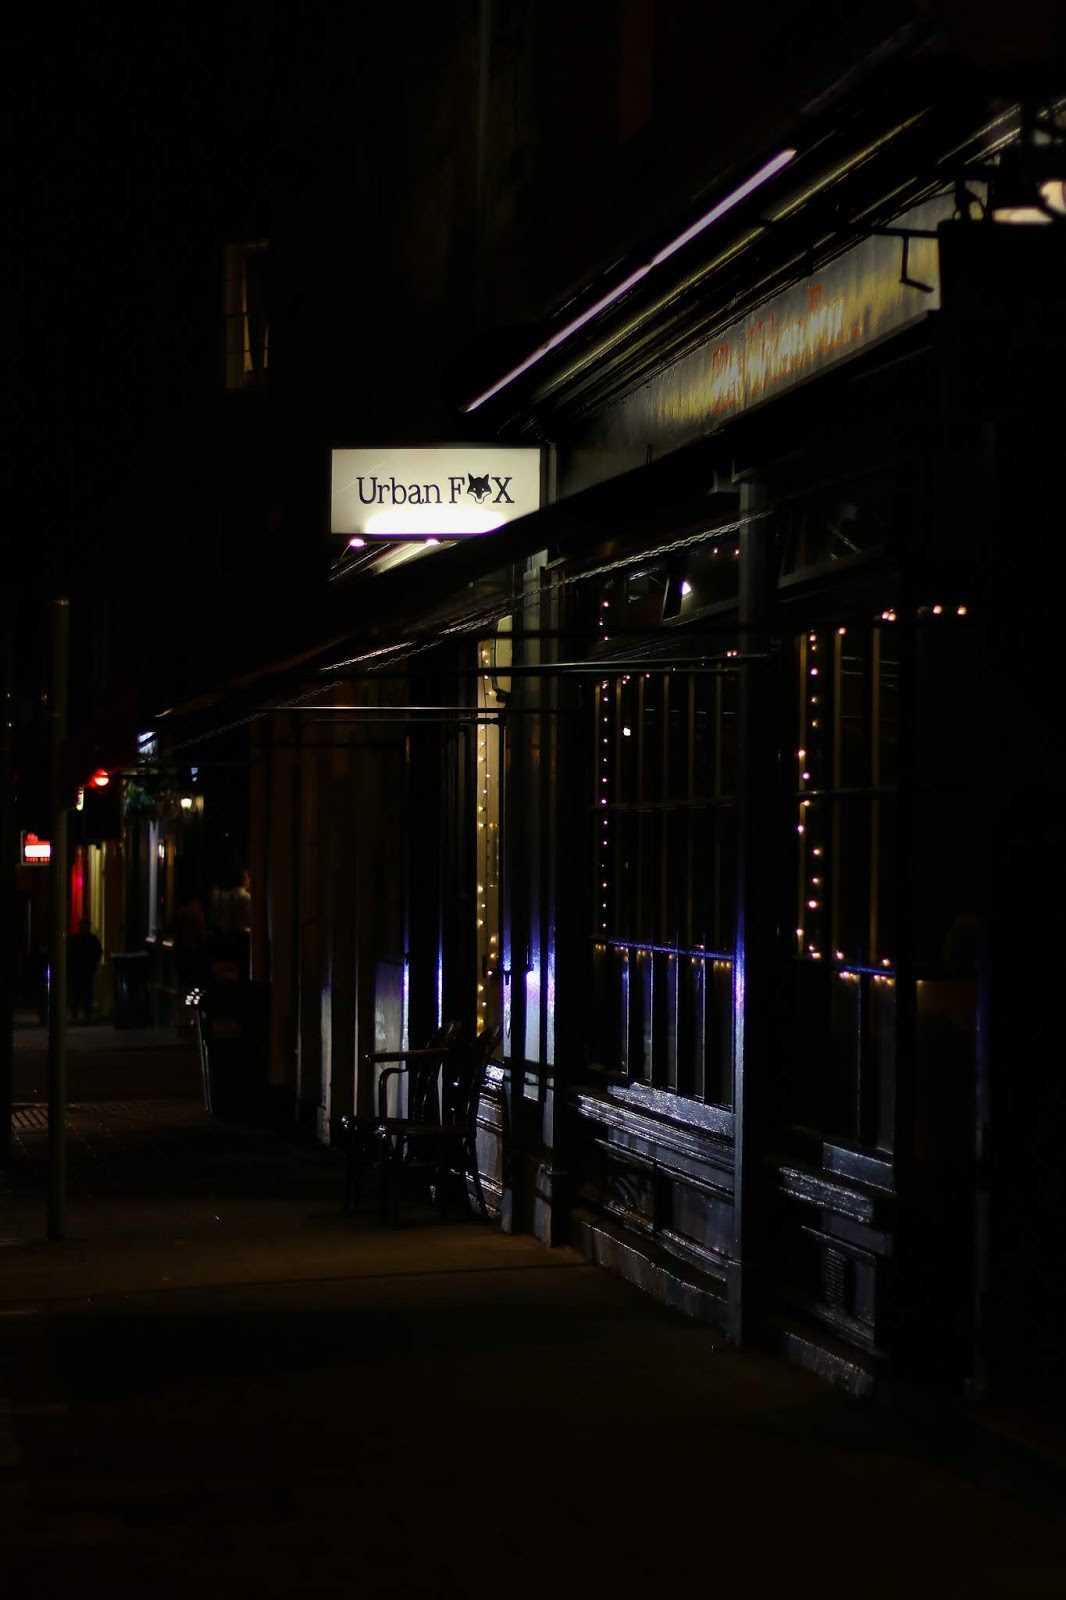 Street photo of the outside of Urban fox restaurant in Edinburgh. It's at night, the photo is quite dark with some light coming from the window and the sign as well as cars passing by.